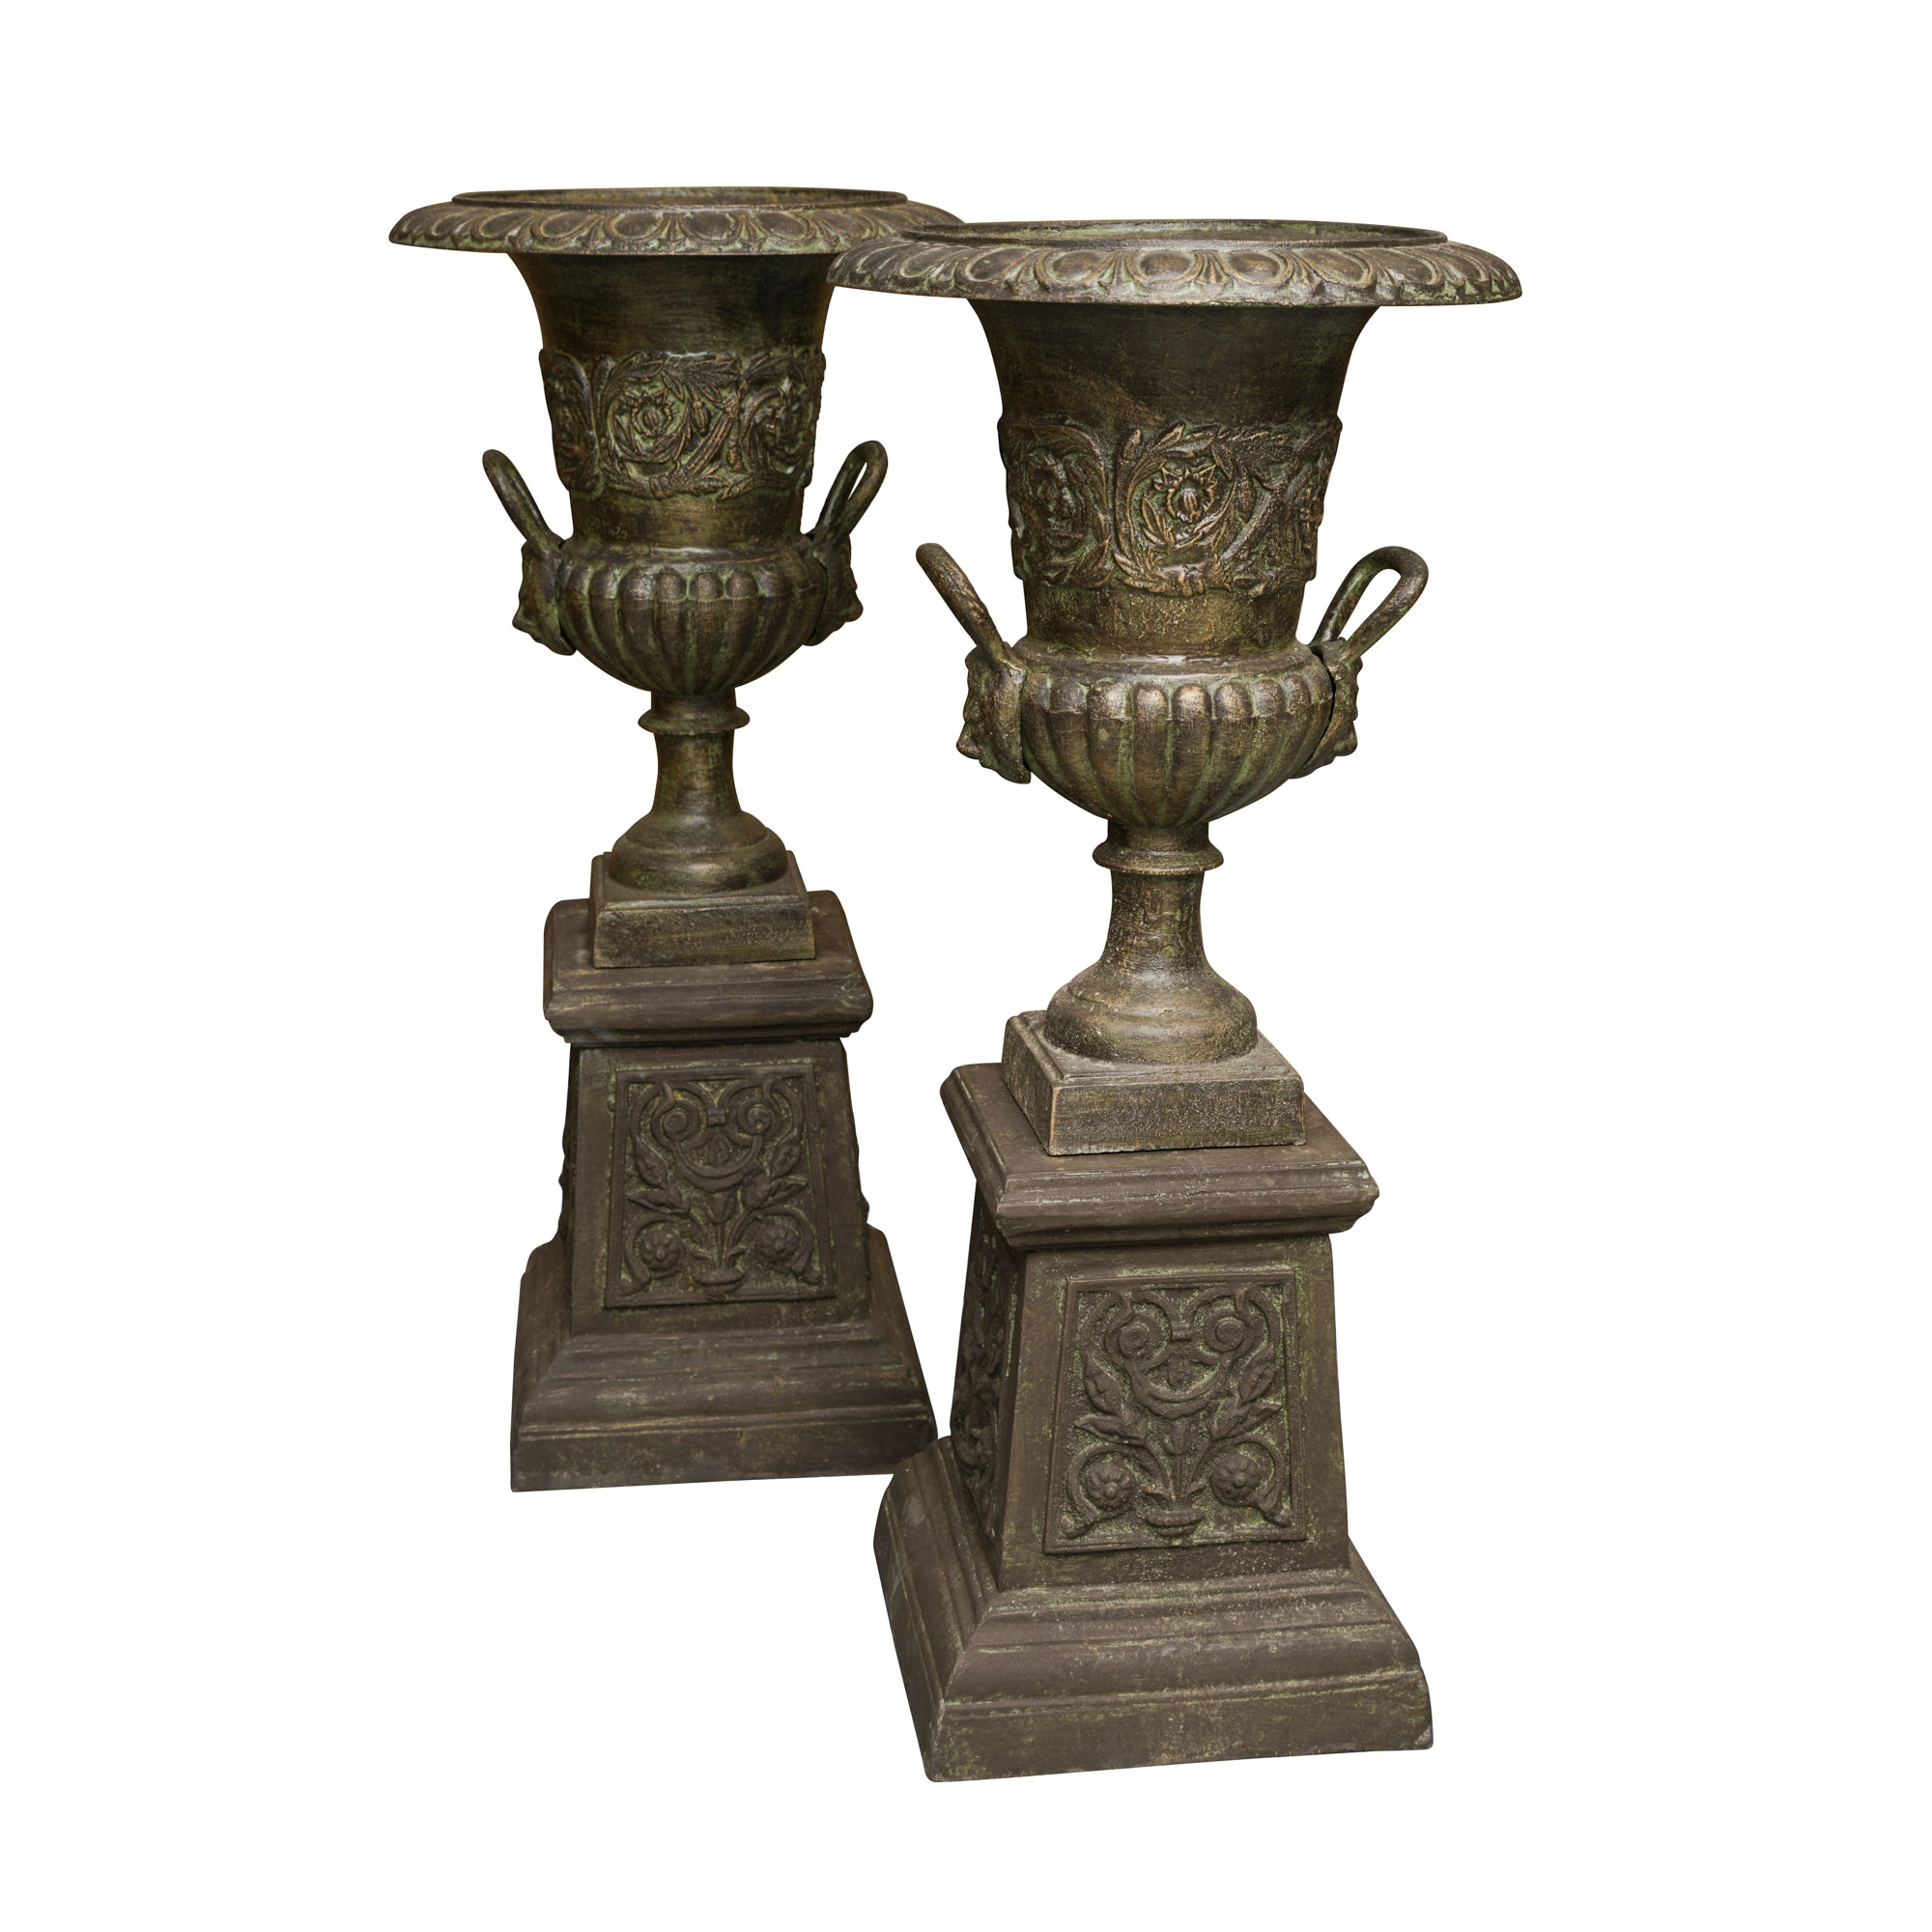 Pair of Large Urn Shaped Planters on Plinths